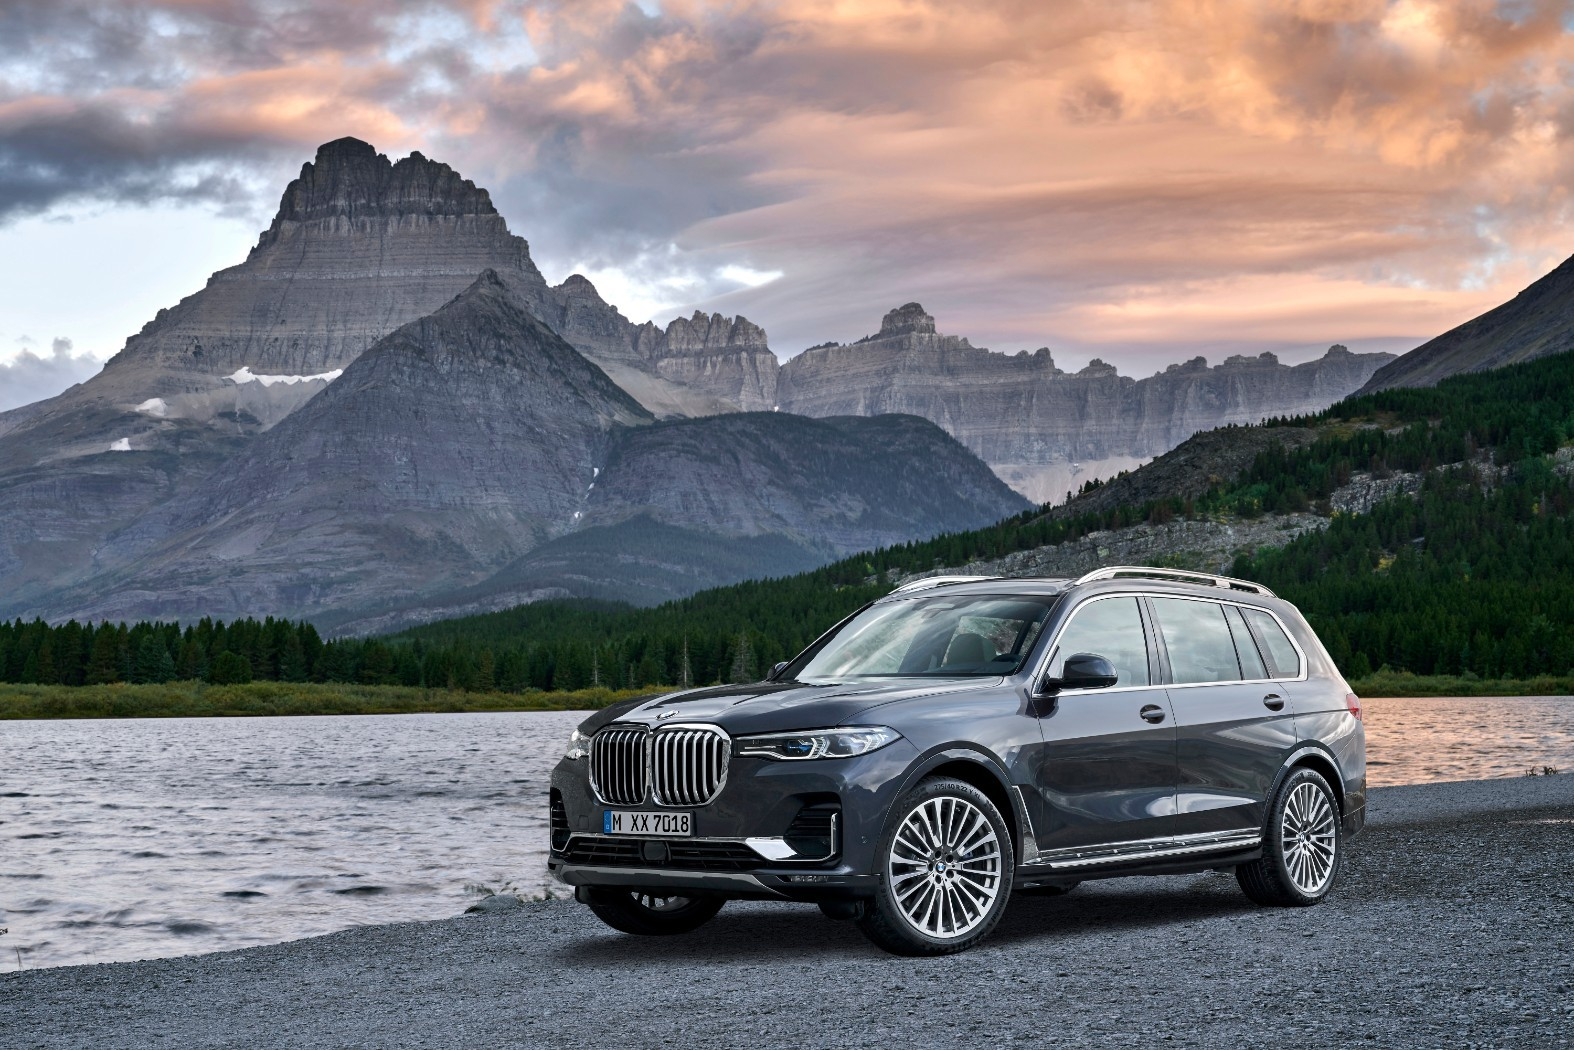 2020 Bmw X7 G07 Goes Official With 7 Seats And Gigantic Kidney Grilles Autoevolution